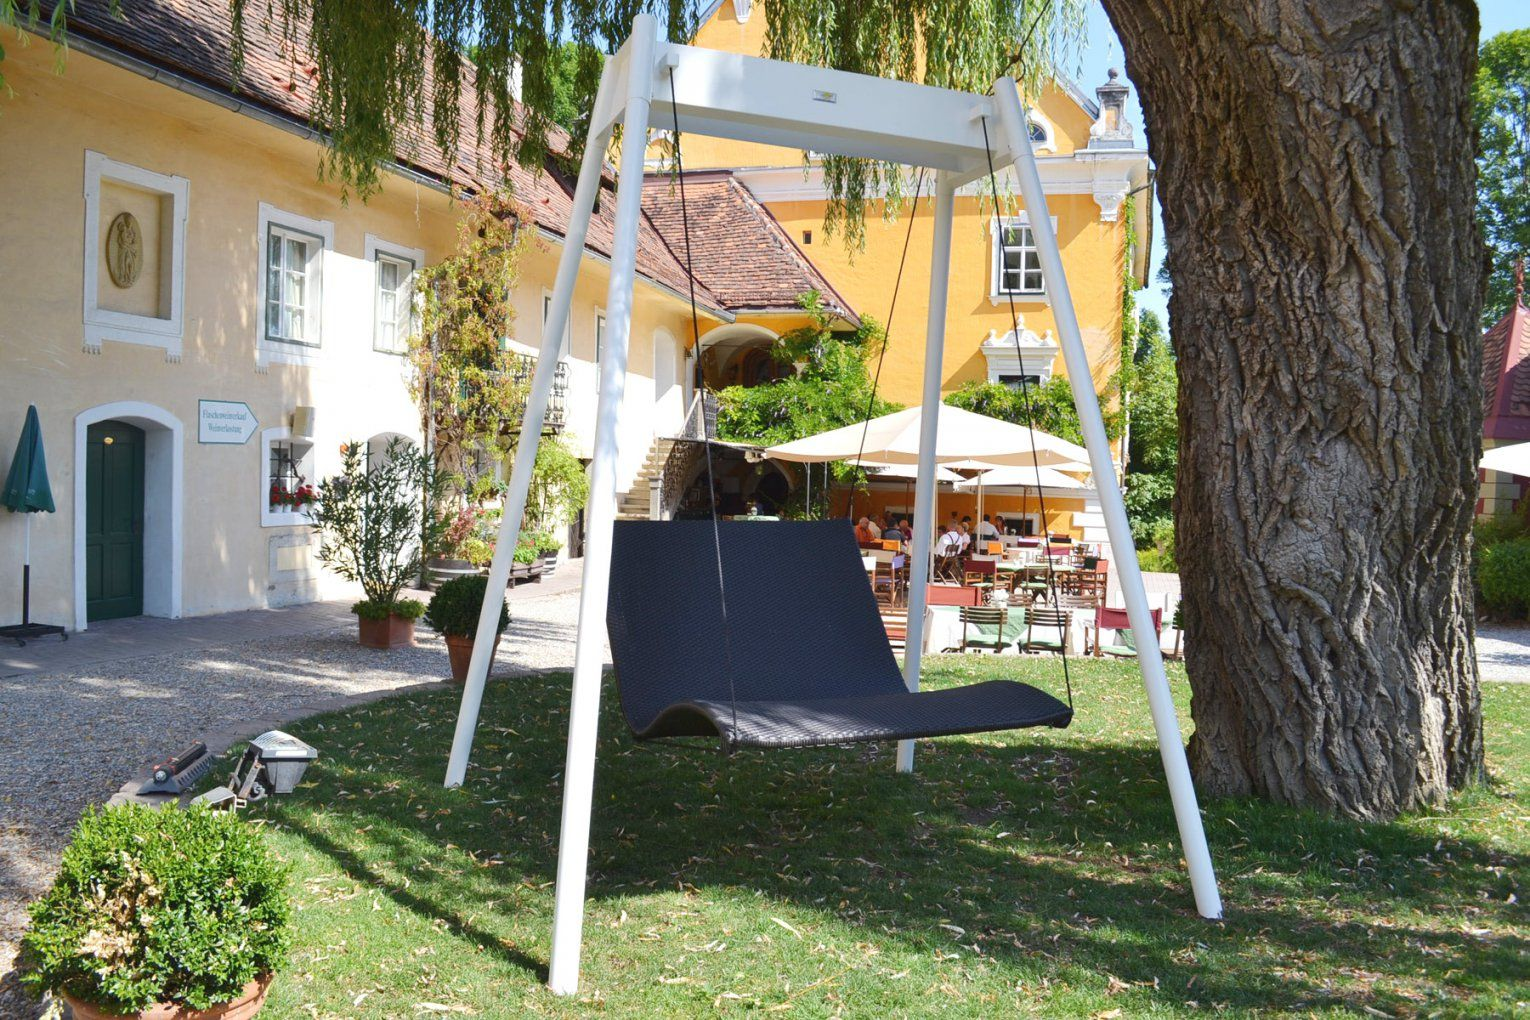 Excellent Mbm Heaven Swing Doppelliege Frisch Mbm Heaven Swing Set von Mbm Heaven Swing Doppelliege Photo